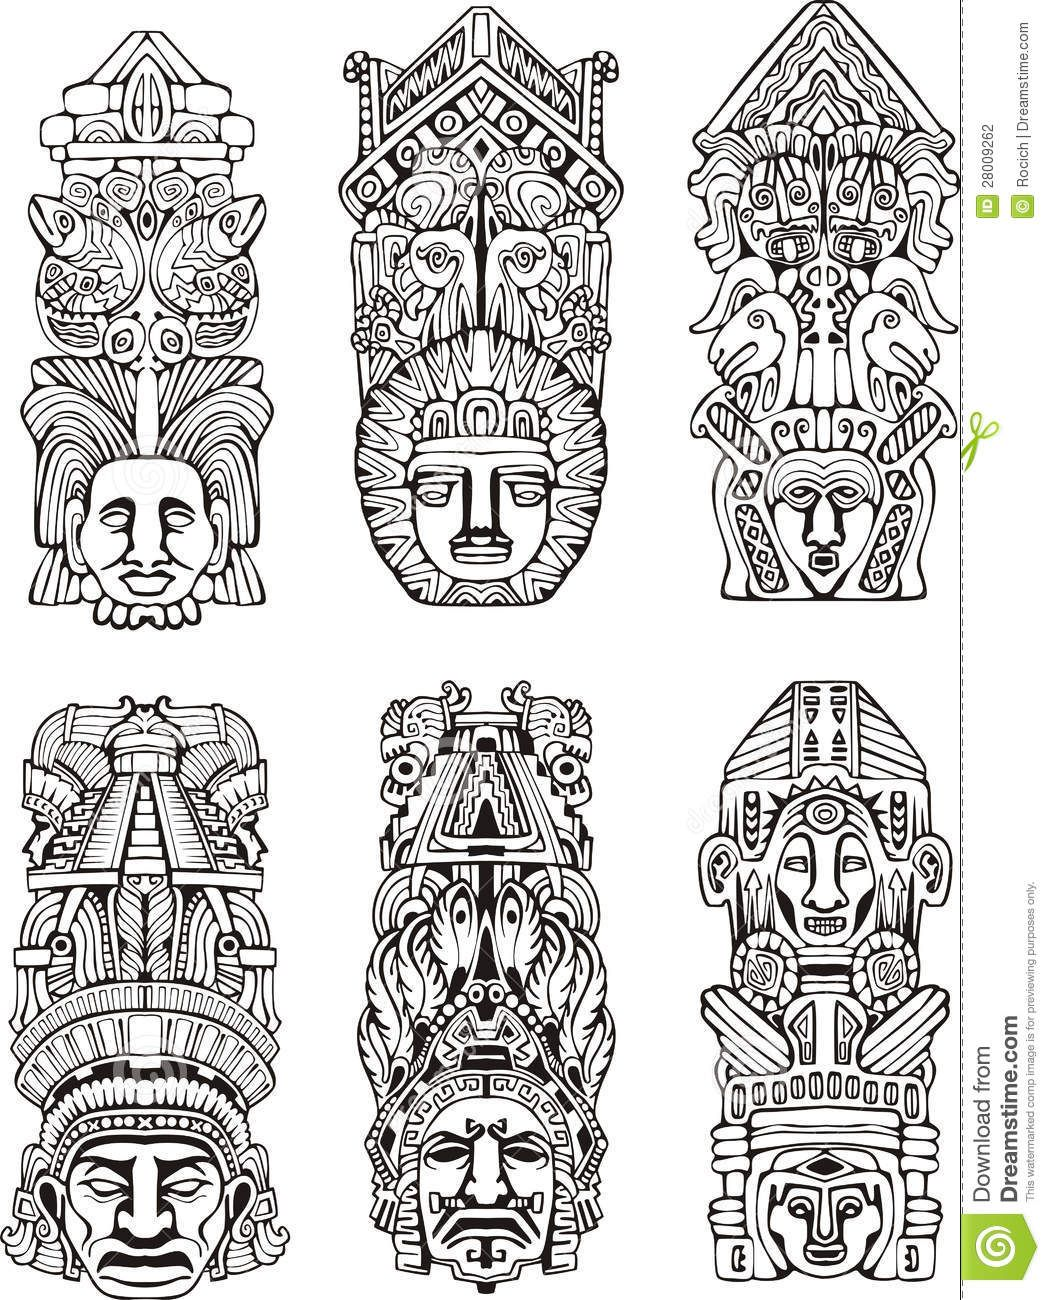 Totem pole designs and meanings images for tatouage totem pole designs and meanings in aztec totems google sk tattoos pinterest biocorpaavc